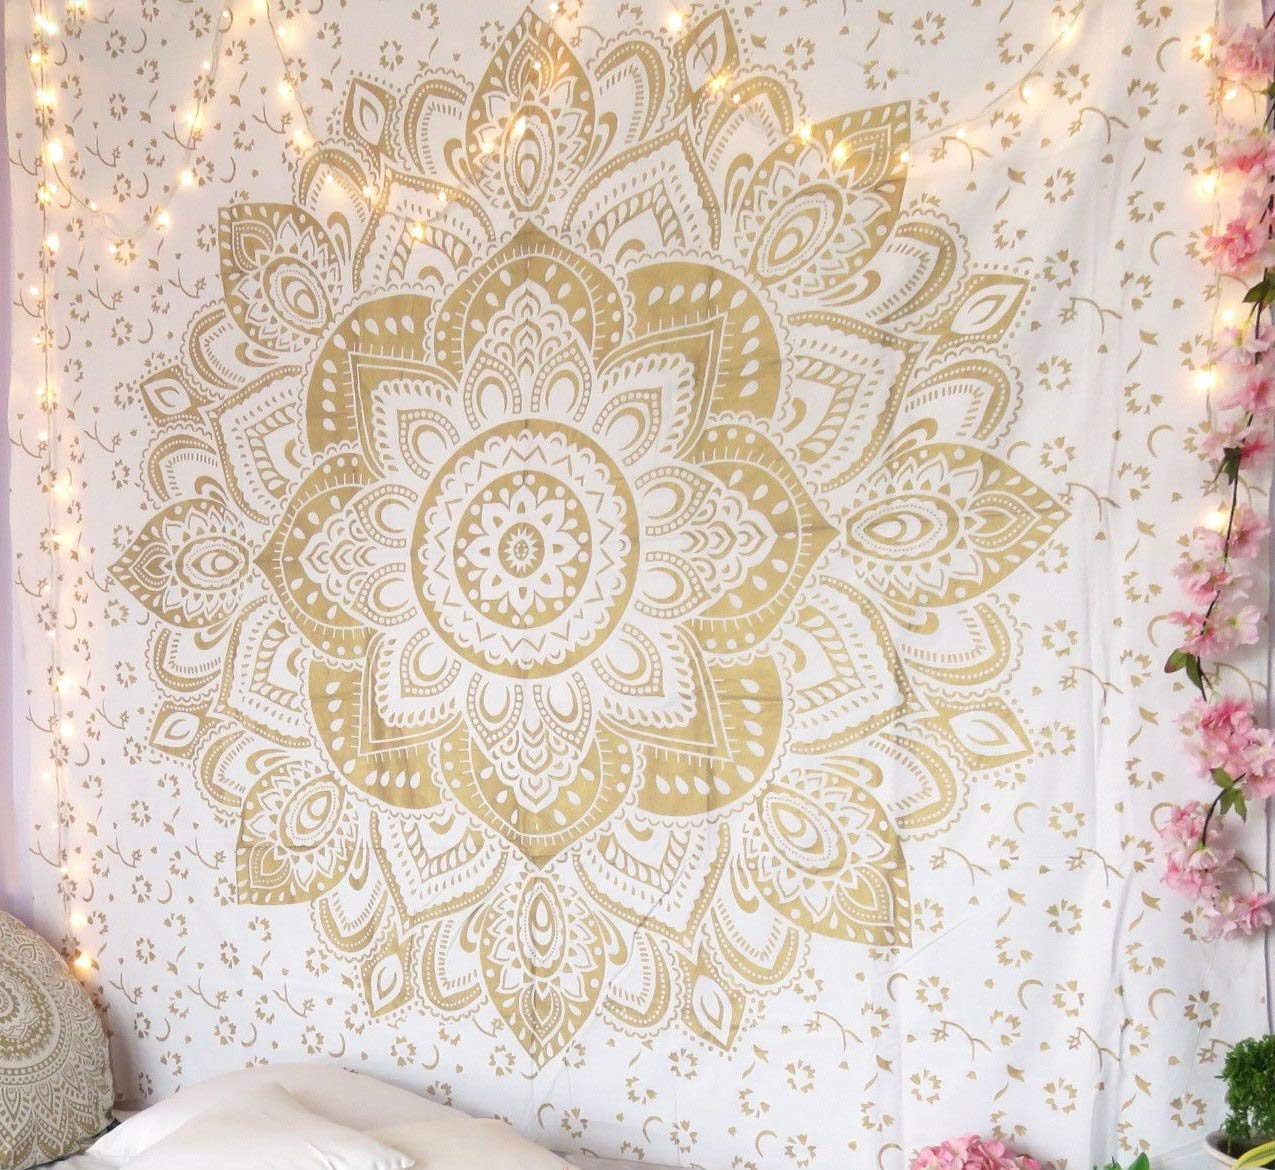 RSG Venture Golden Ombre Tapestry Gold Tapestry Ombre Bedding, Mandala Tapestry, Multi Color Indian Mandala Wall Art Hippie Wall Hanging (Gold, 85x55 Inch)